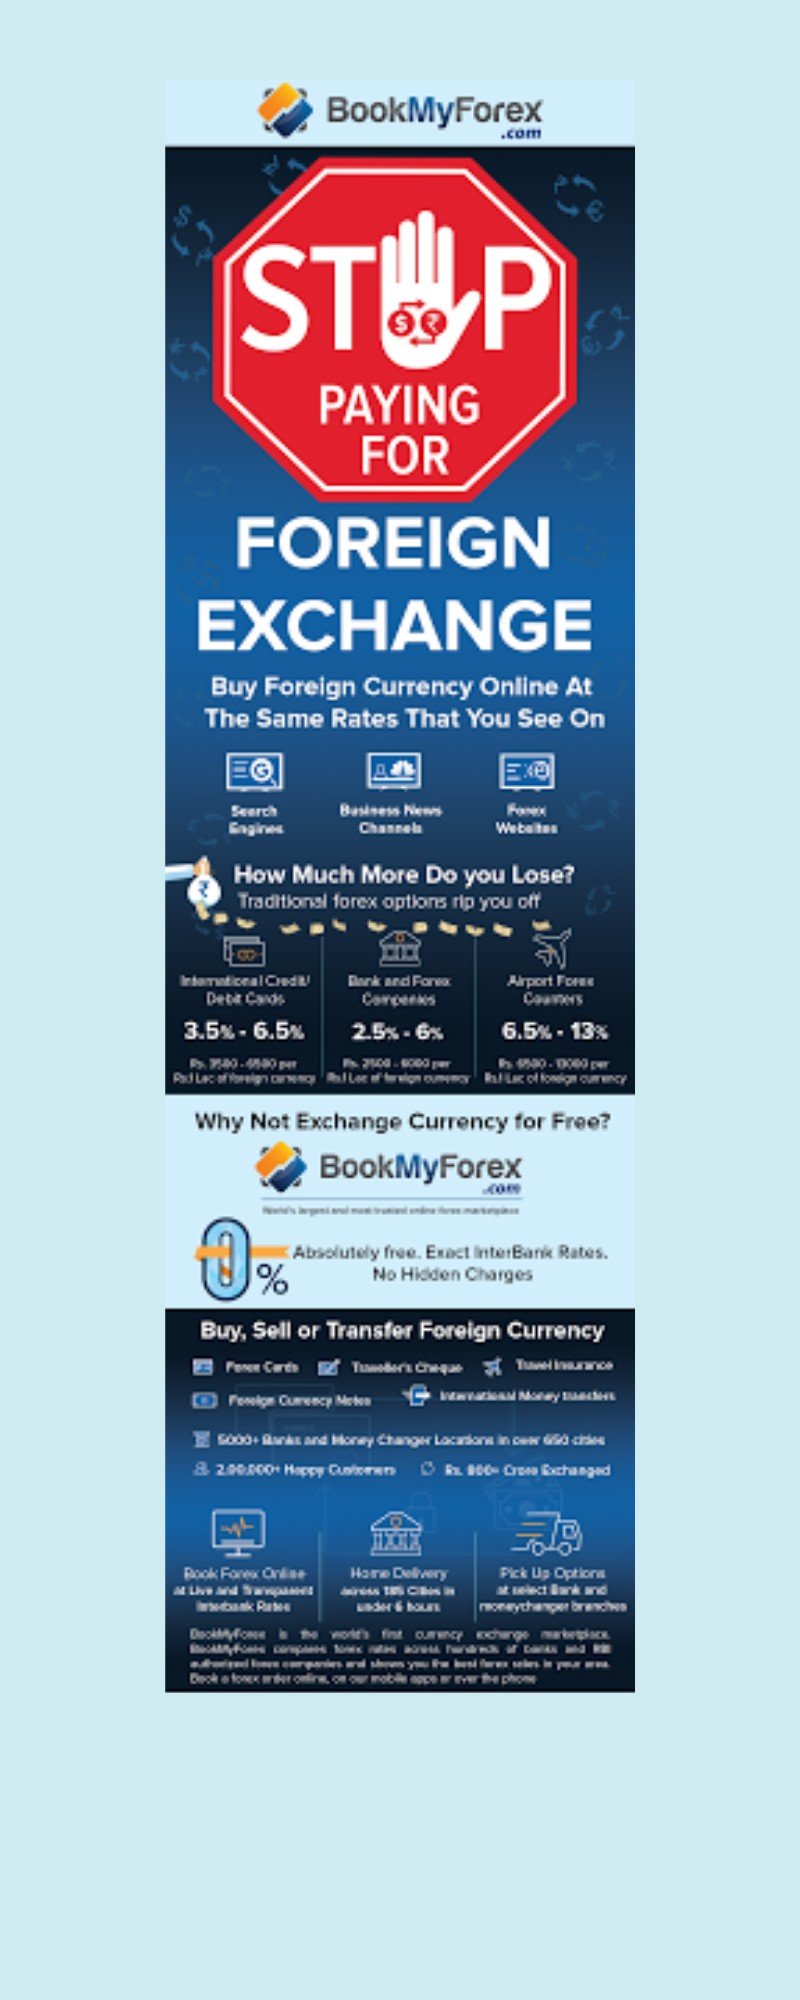 Buy Foreign Currency Online On BookMyForex At Live Forex Rates